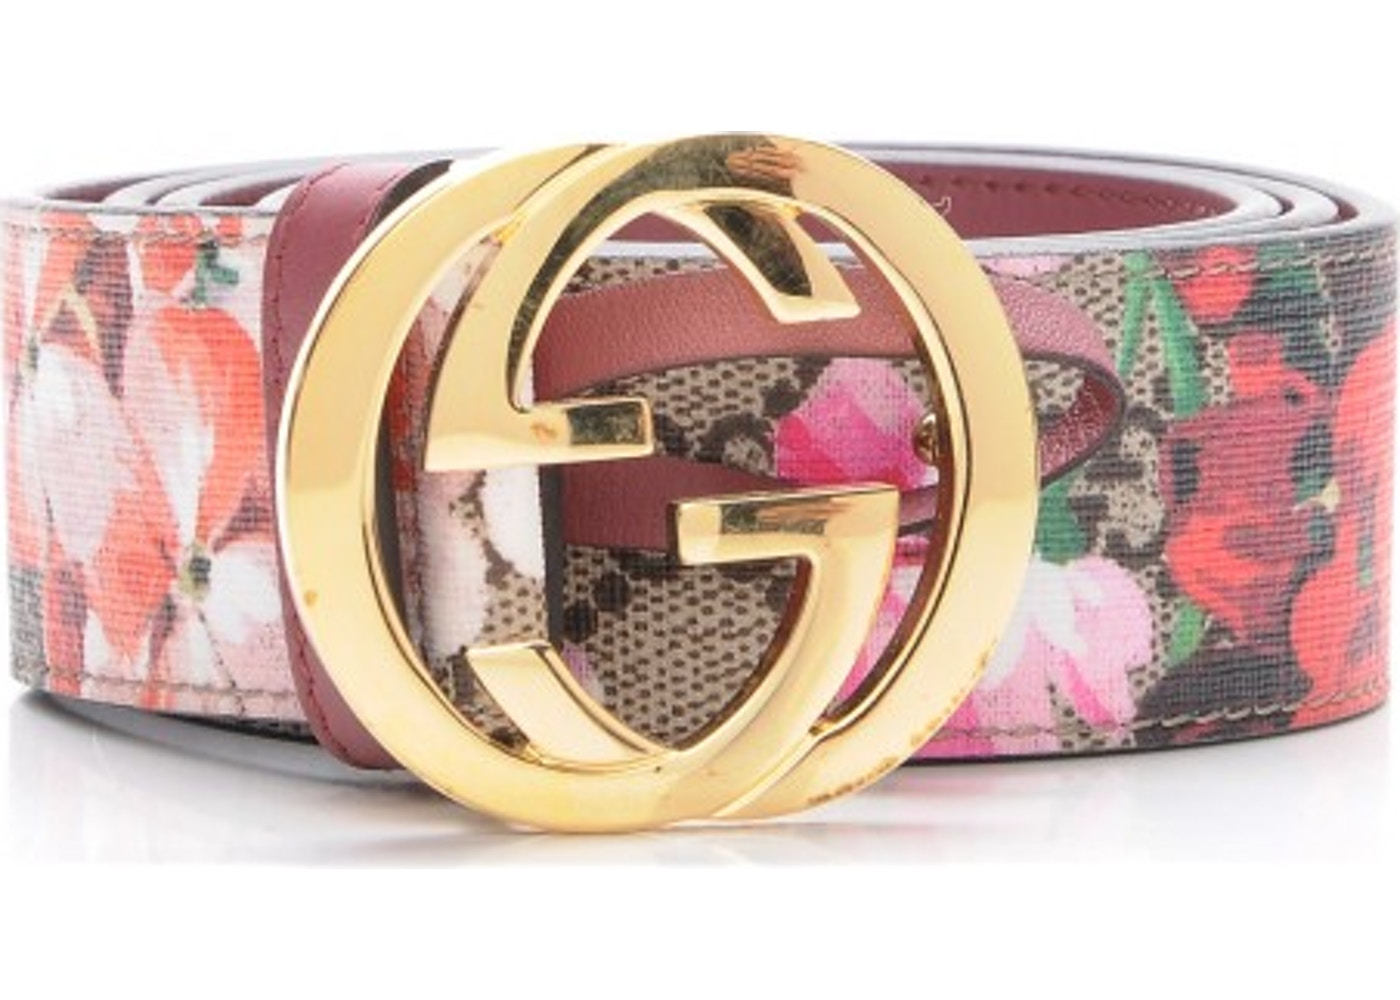 b4444f1fa1b Gucci G Belt Blooms GG Supreme 85 34 Pink Brown Beige Green